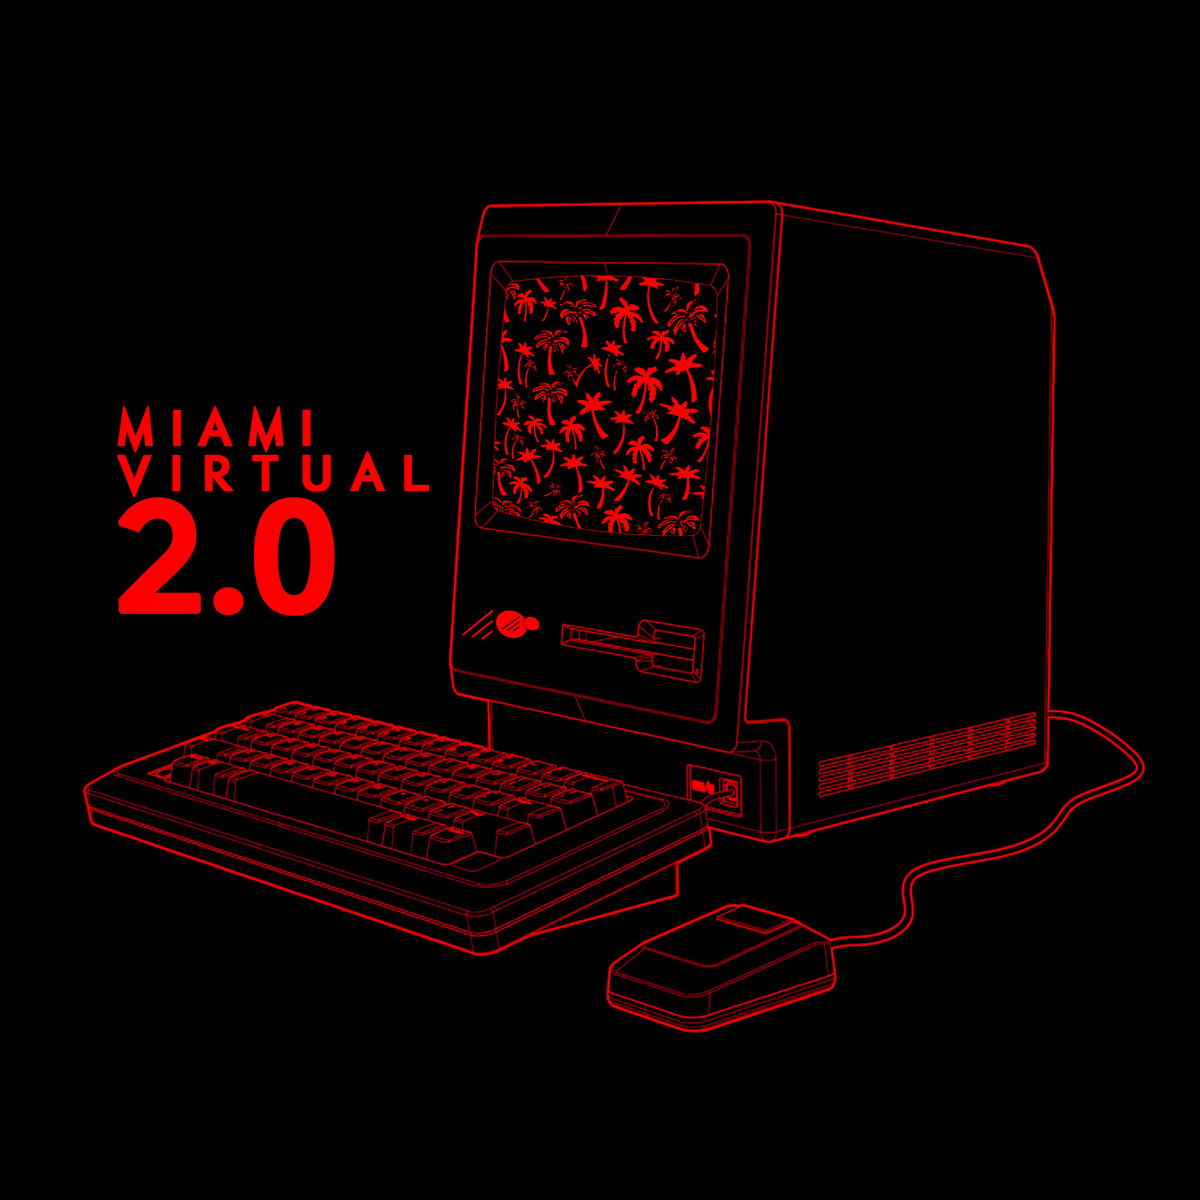 Miami Virtual 2.0 cover